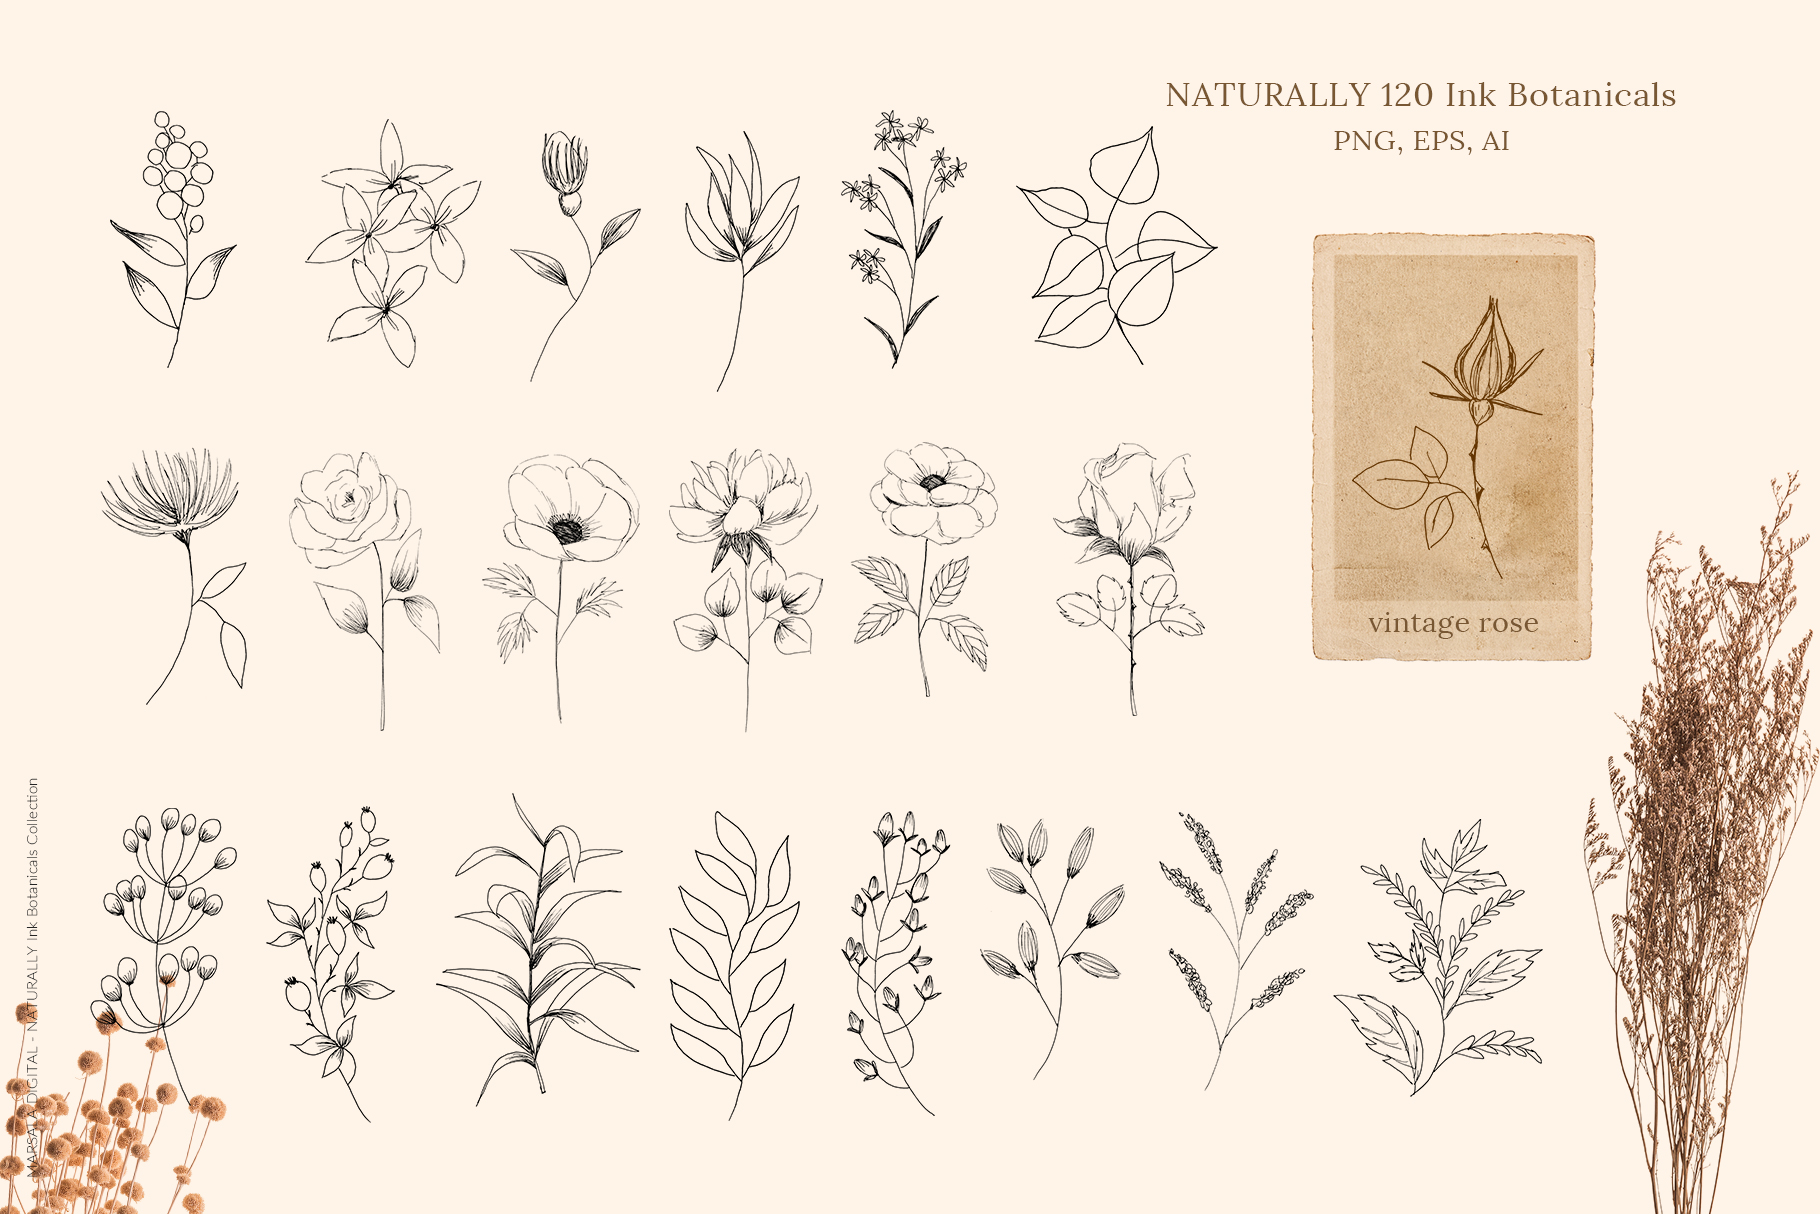 Ink Botanicals Vintage Wildflowers Ink Botanicals Vintage example image 8